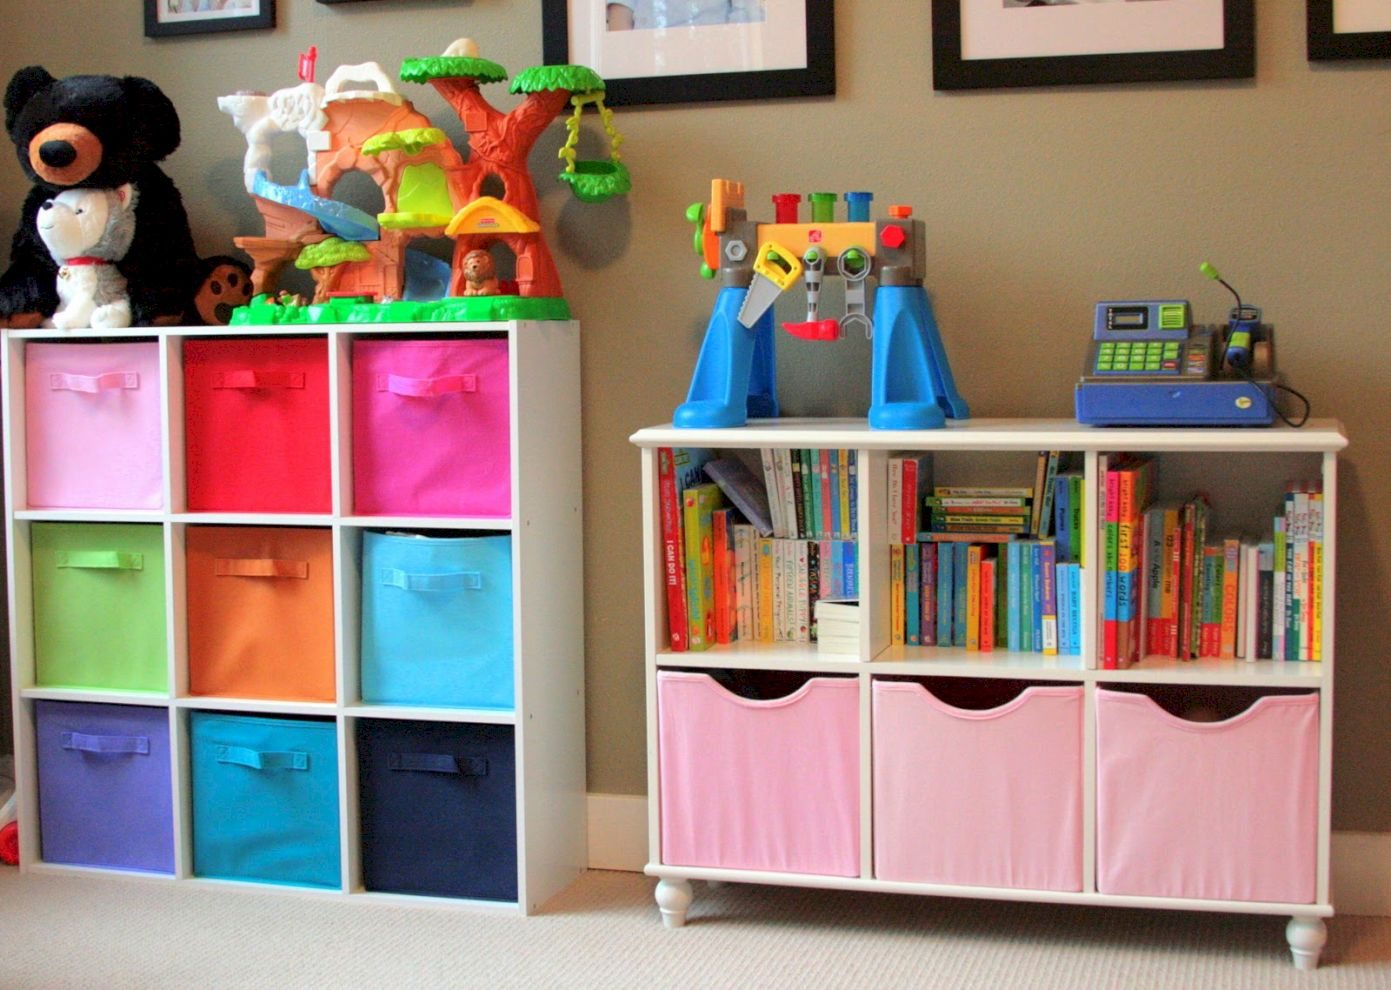 61 creative toy storage ideas for living room round decor Storage ideas for toys in living rooms